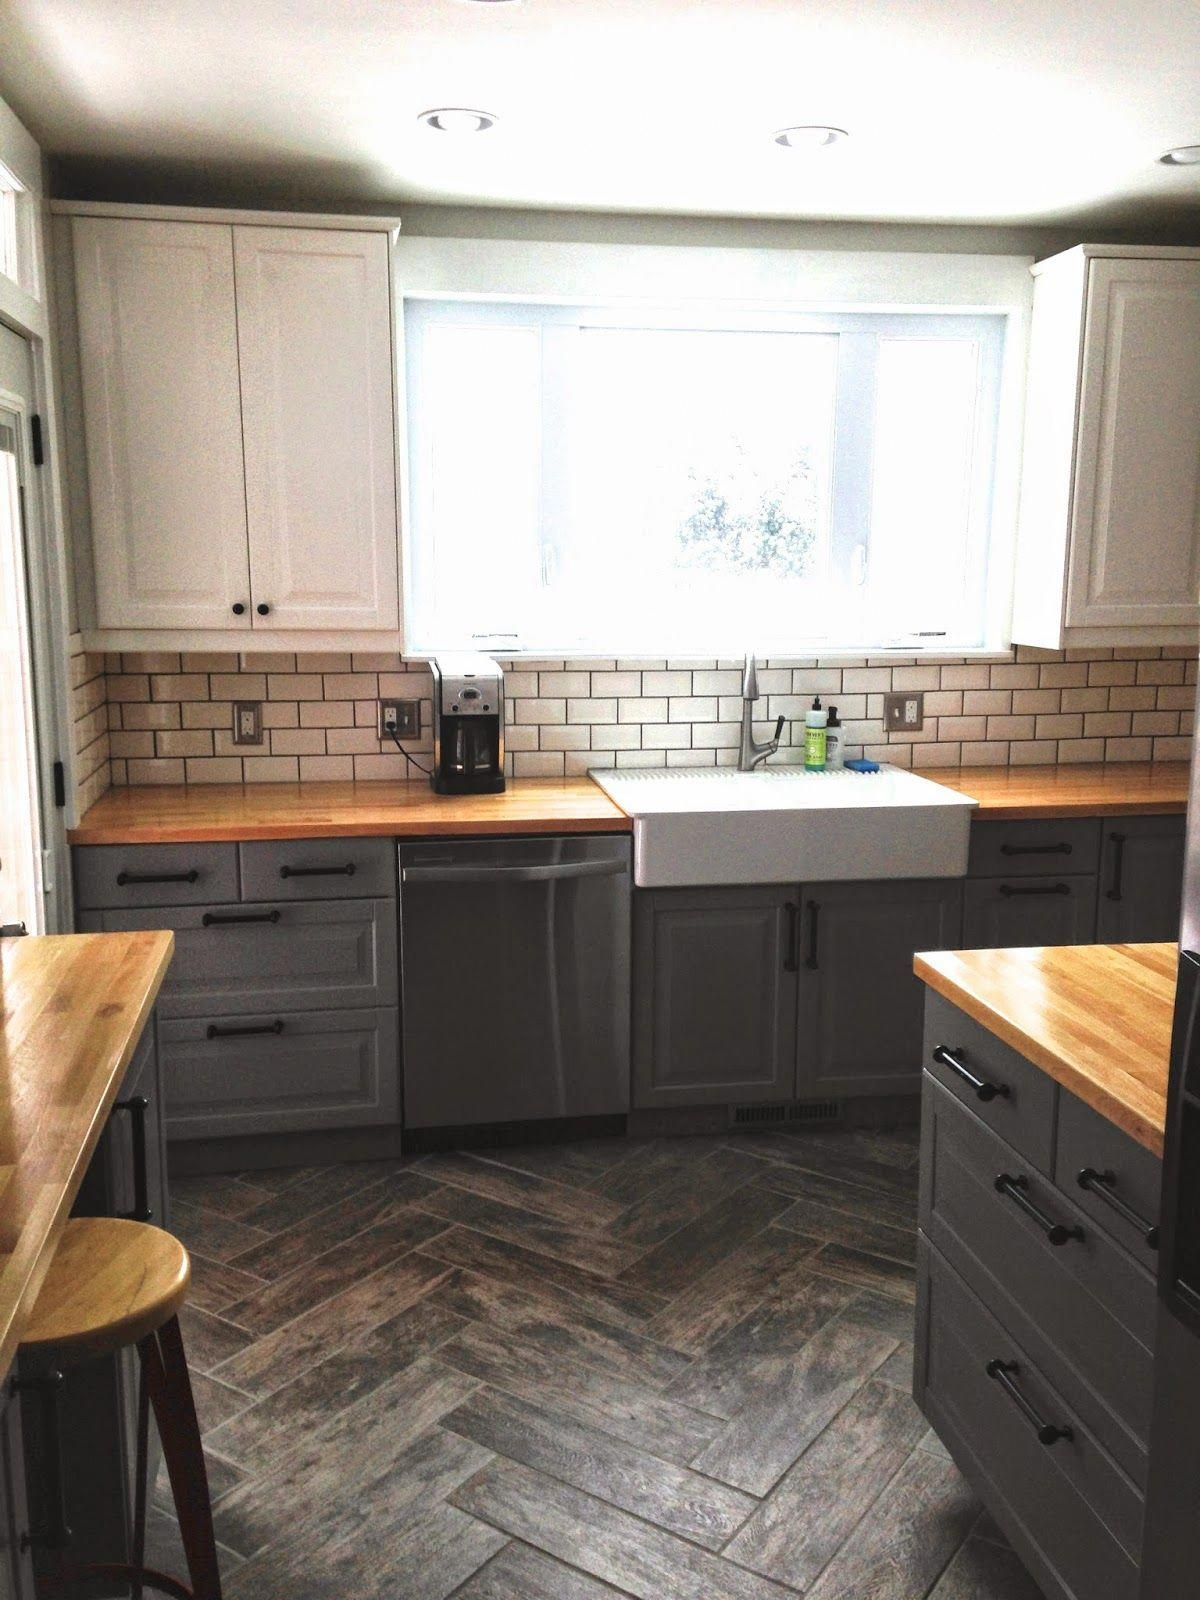 Our Ikea kitchen renovation! Akurum base cabinets in grey ...